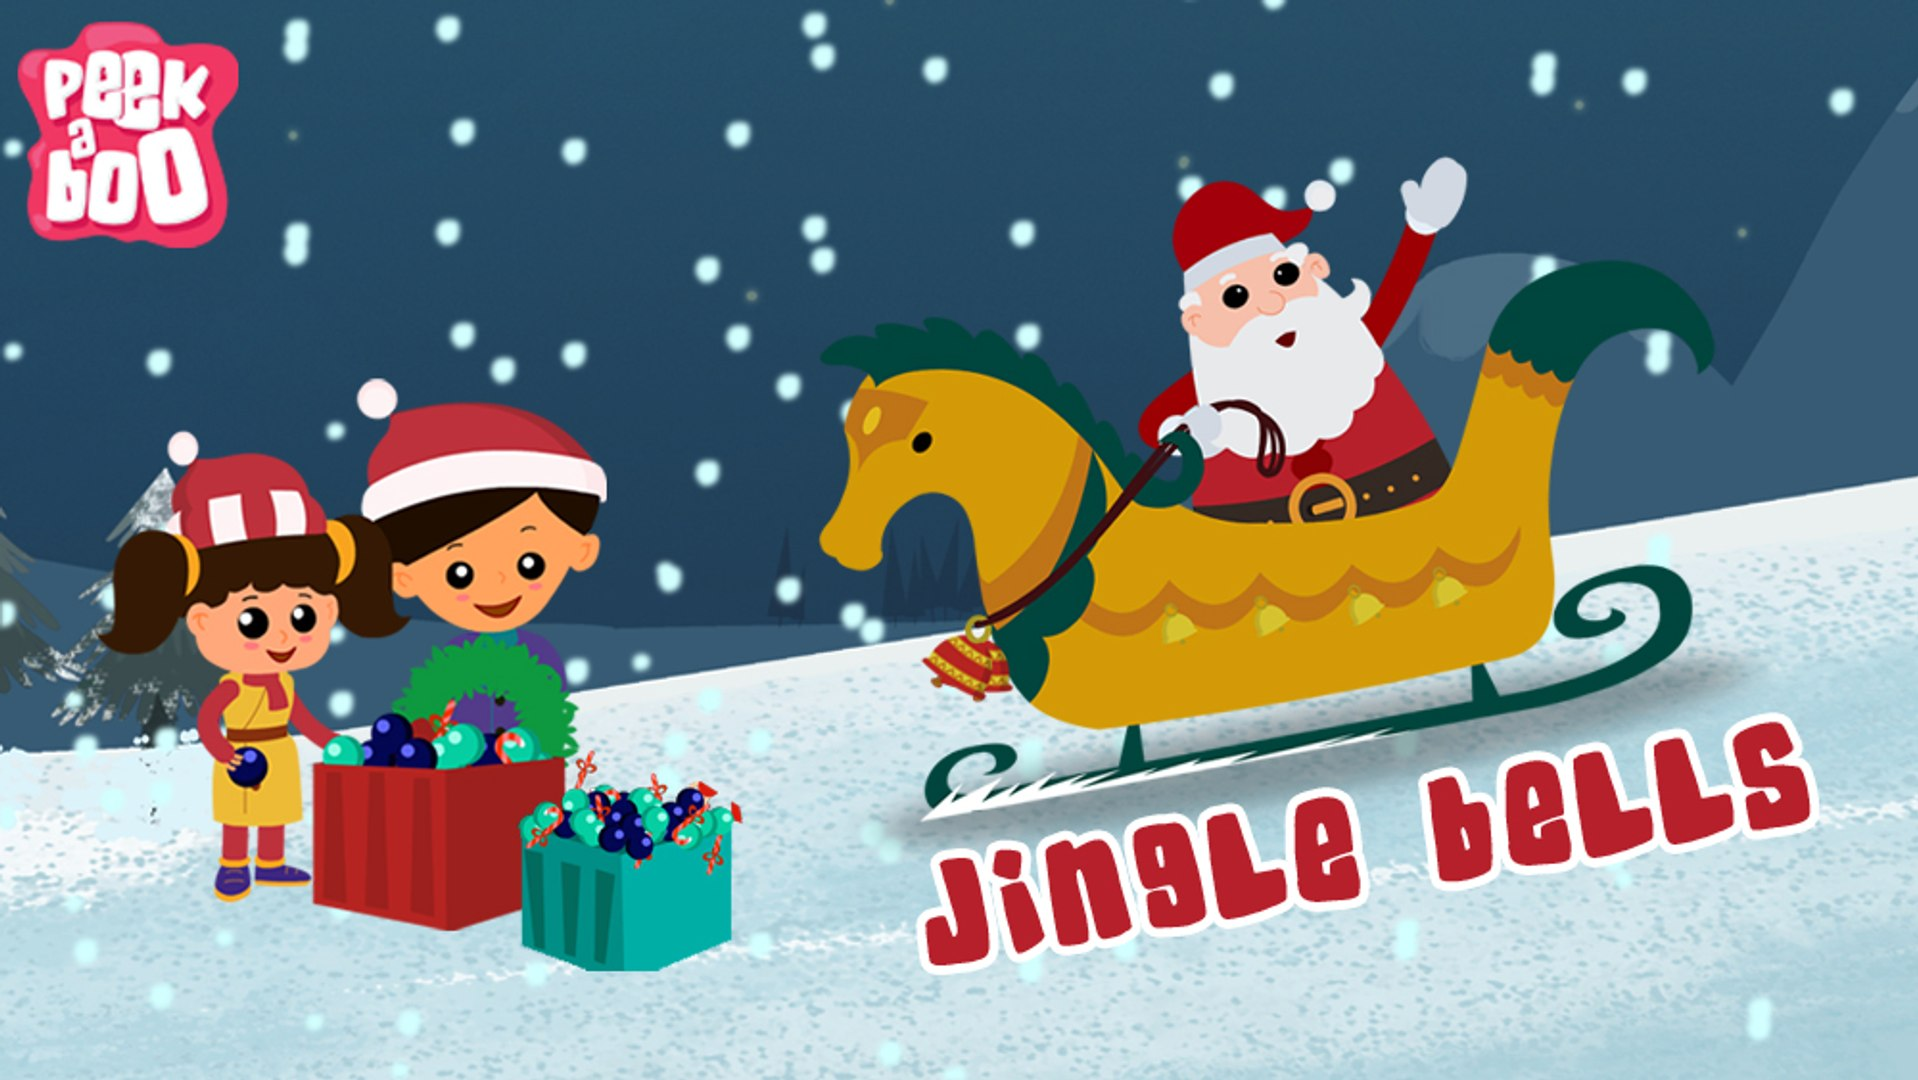 Jingle Bells Song For Children With Lyrics Popular Christmas Songs For Kids Video Dailymotion